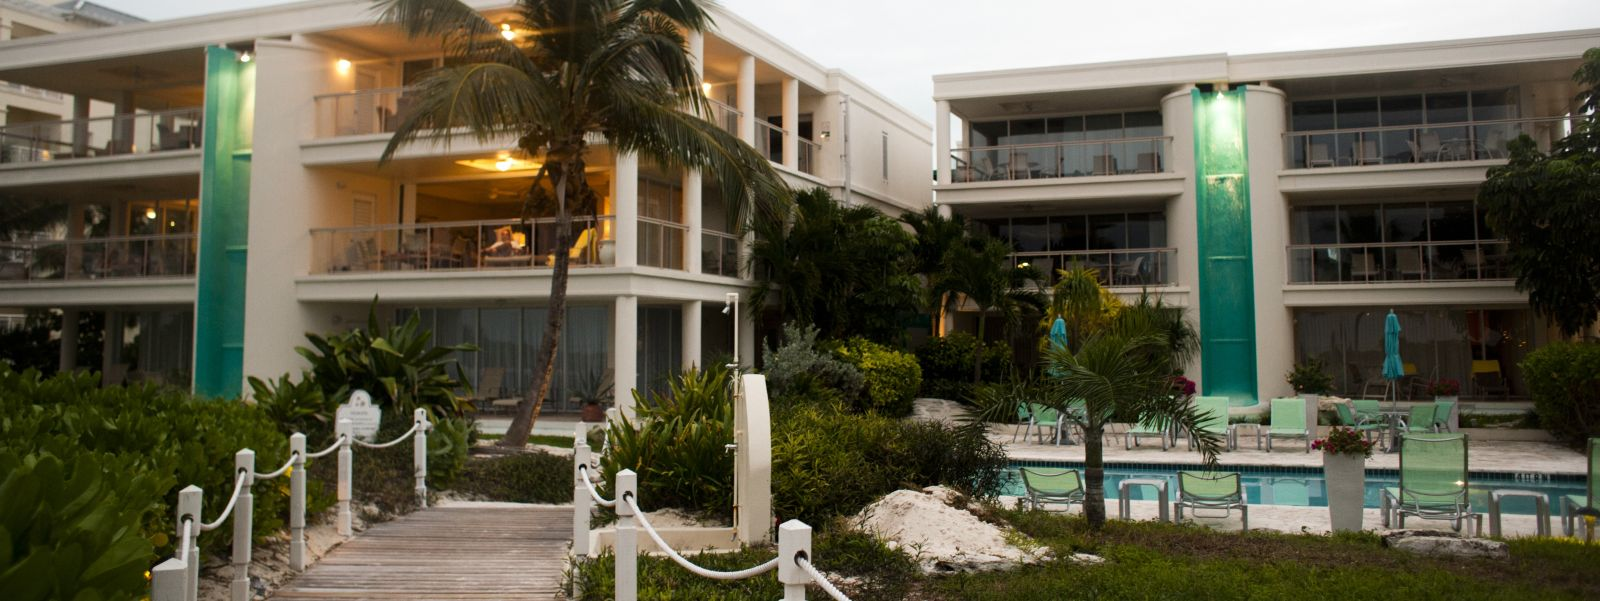 Coral Gardens Resort Turks Caicos Grace Bay Vacation Rentals